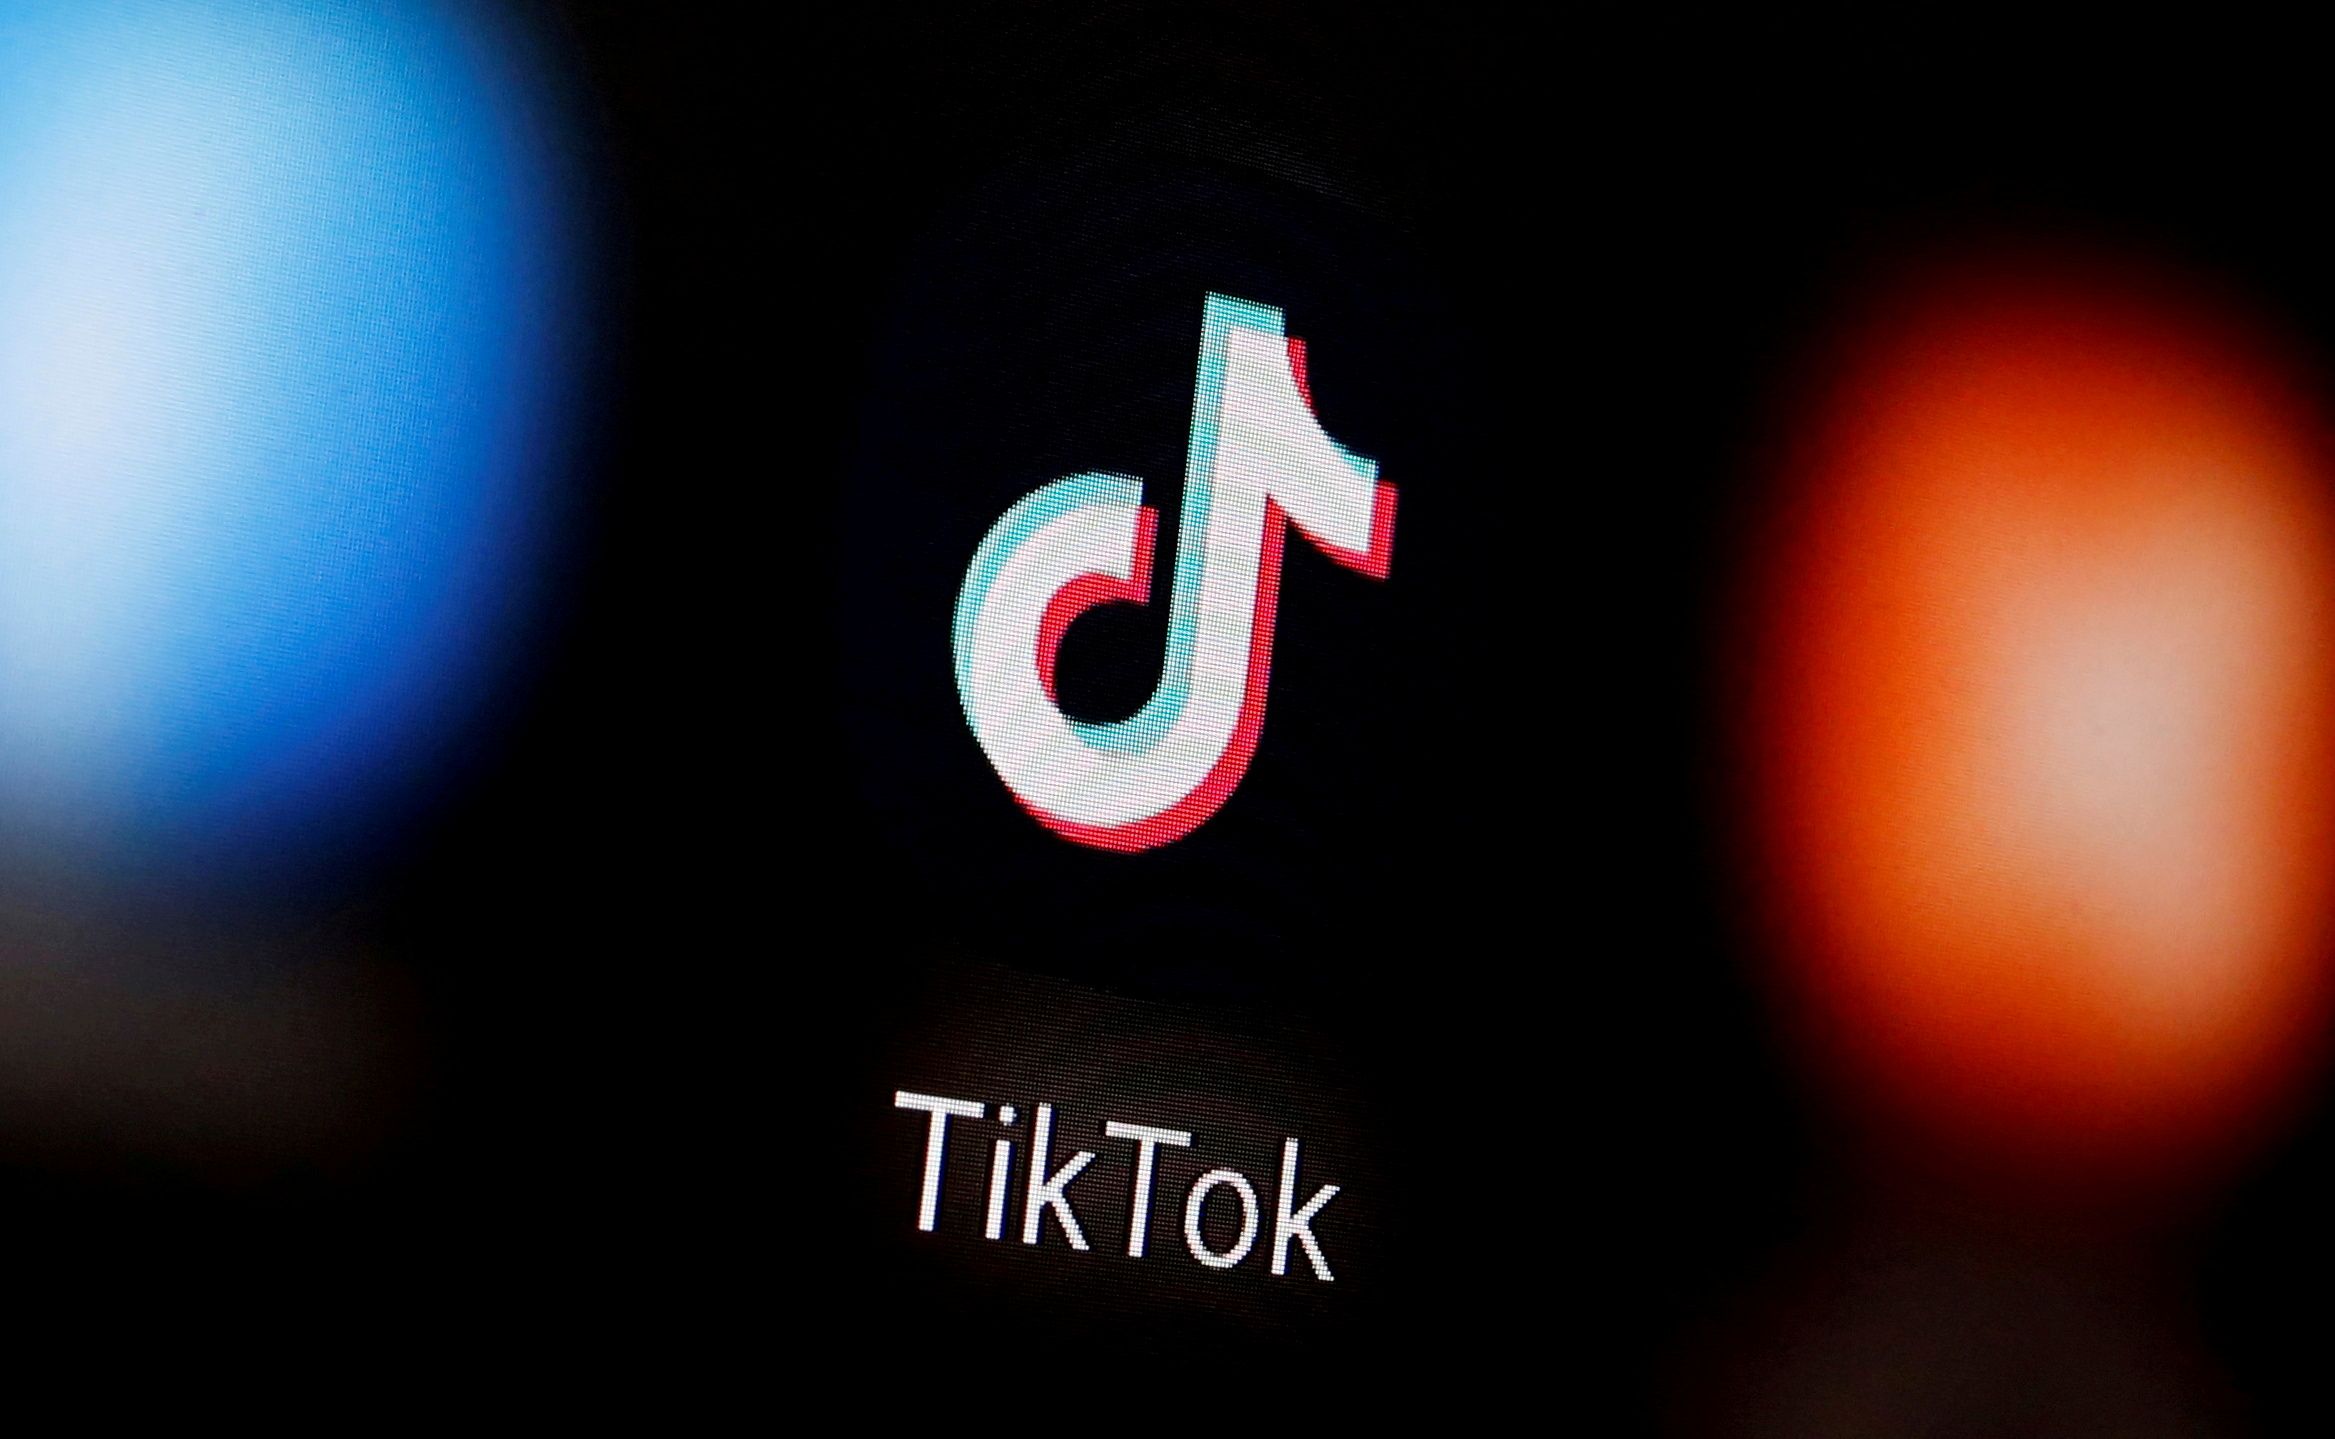 A TikTok logo is displayed on a smartphone in this illustration taken January 6, 2020. REUTERS/Dado Ruvic/Illustration